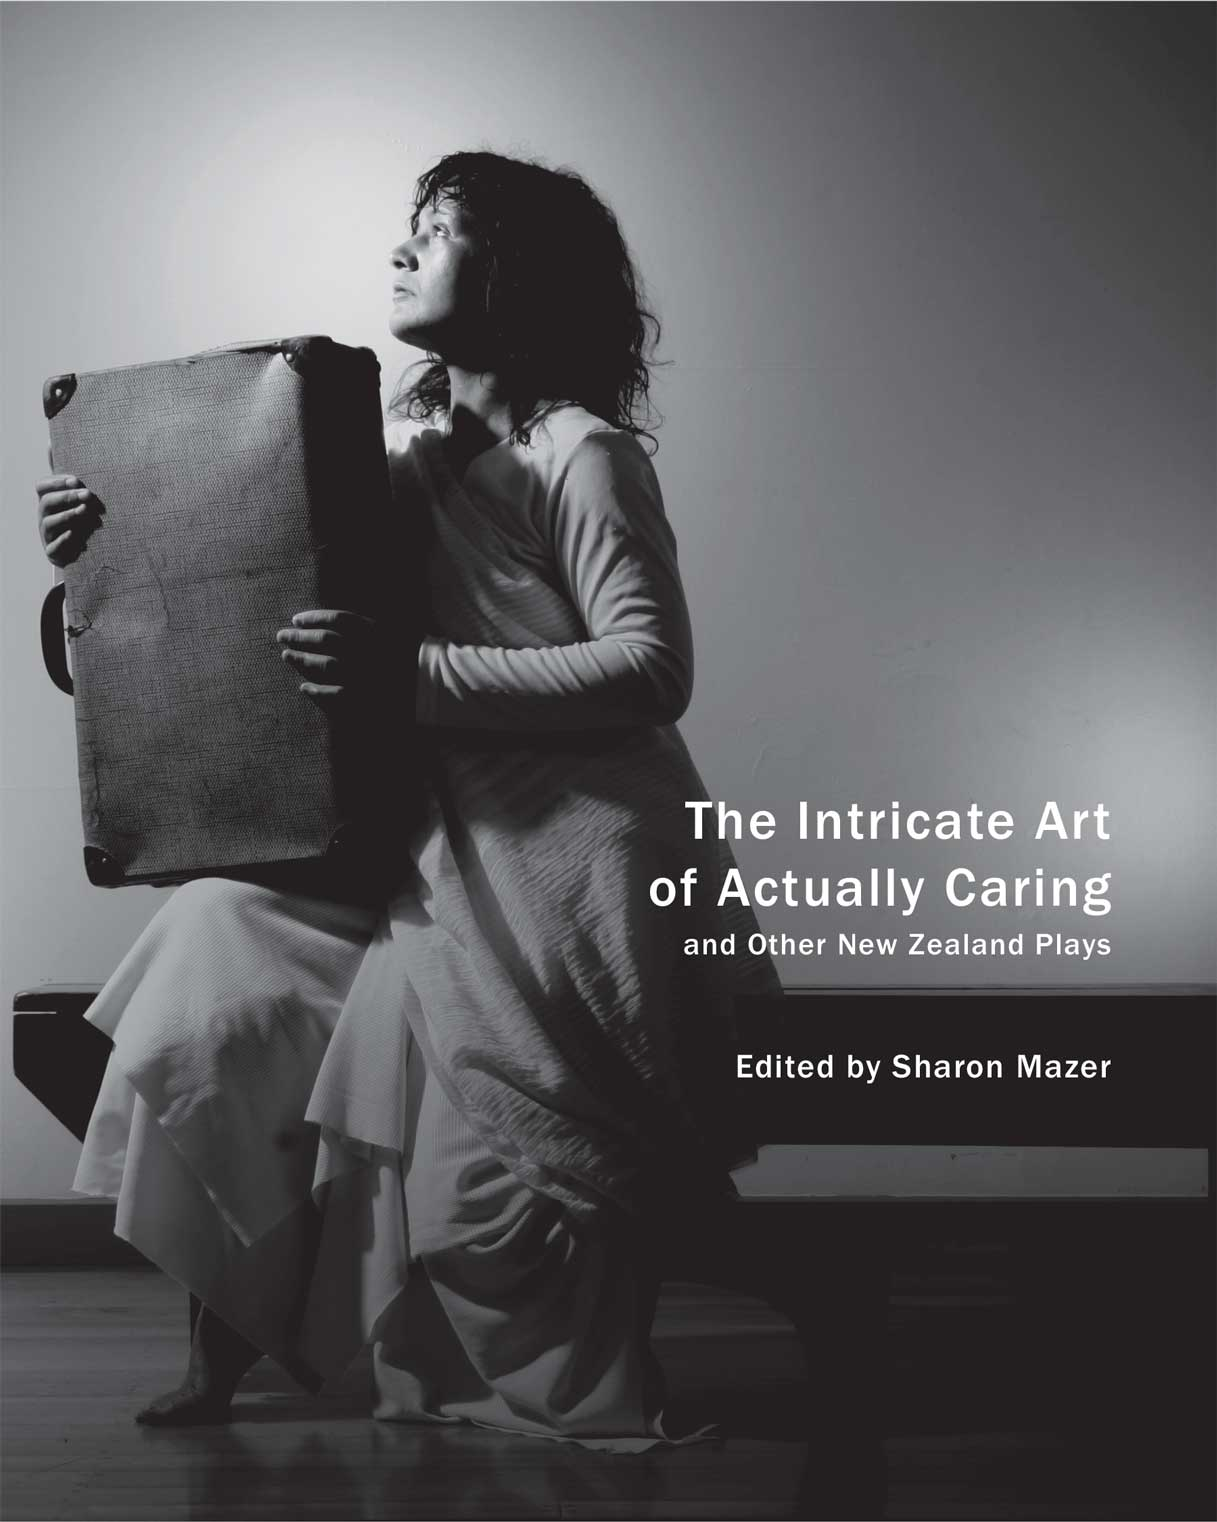 The Intricate Art of Actually Caring, and Other New Zealand Plays | Edited by Sharon Mazer | Seagull Books